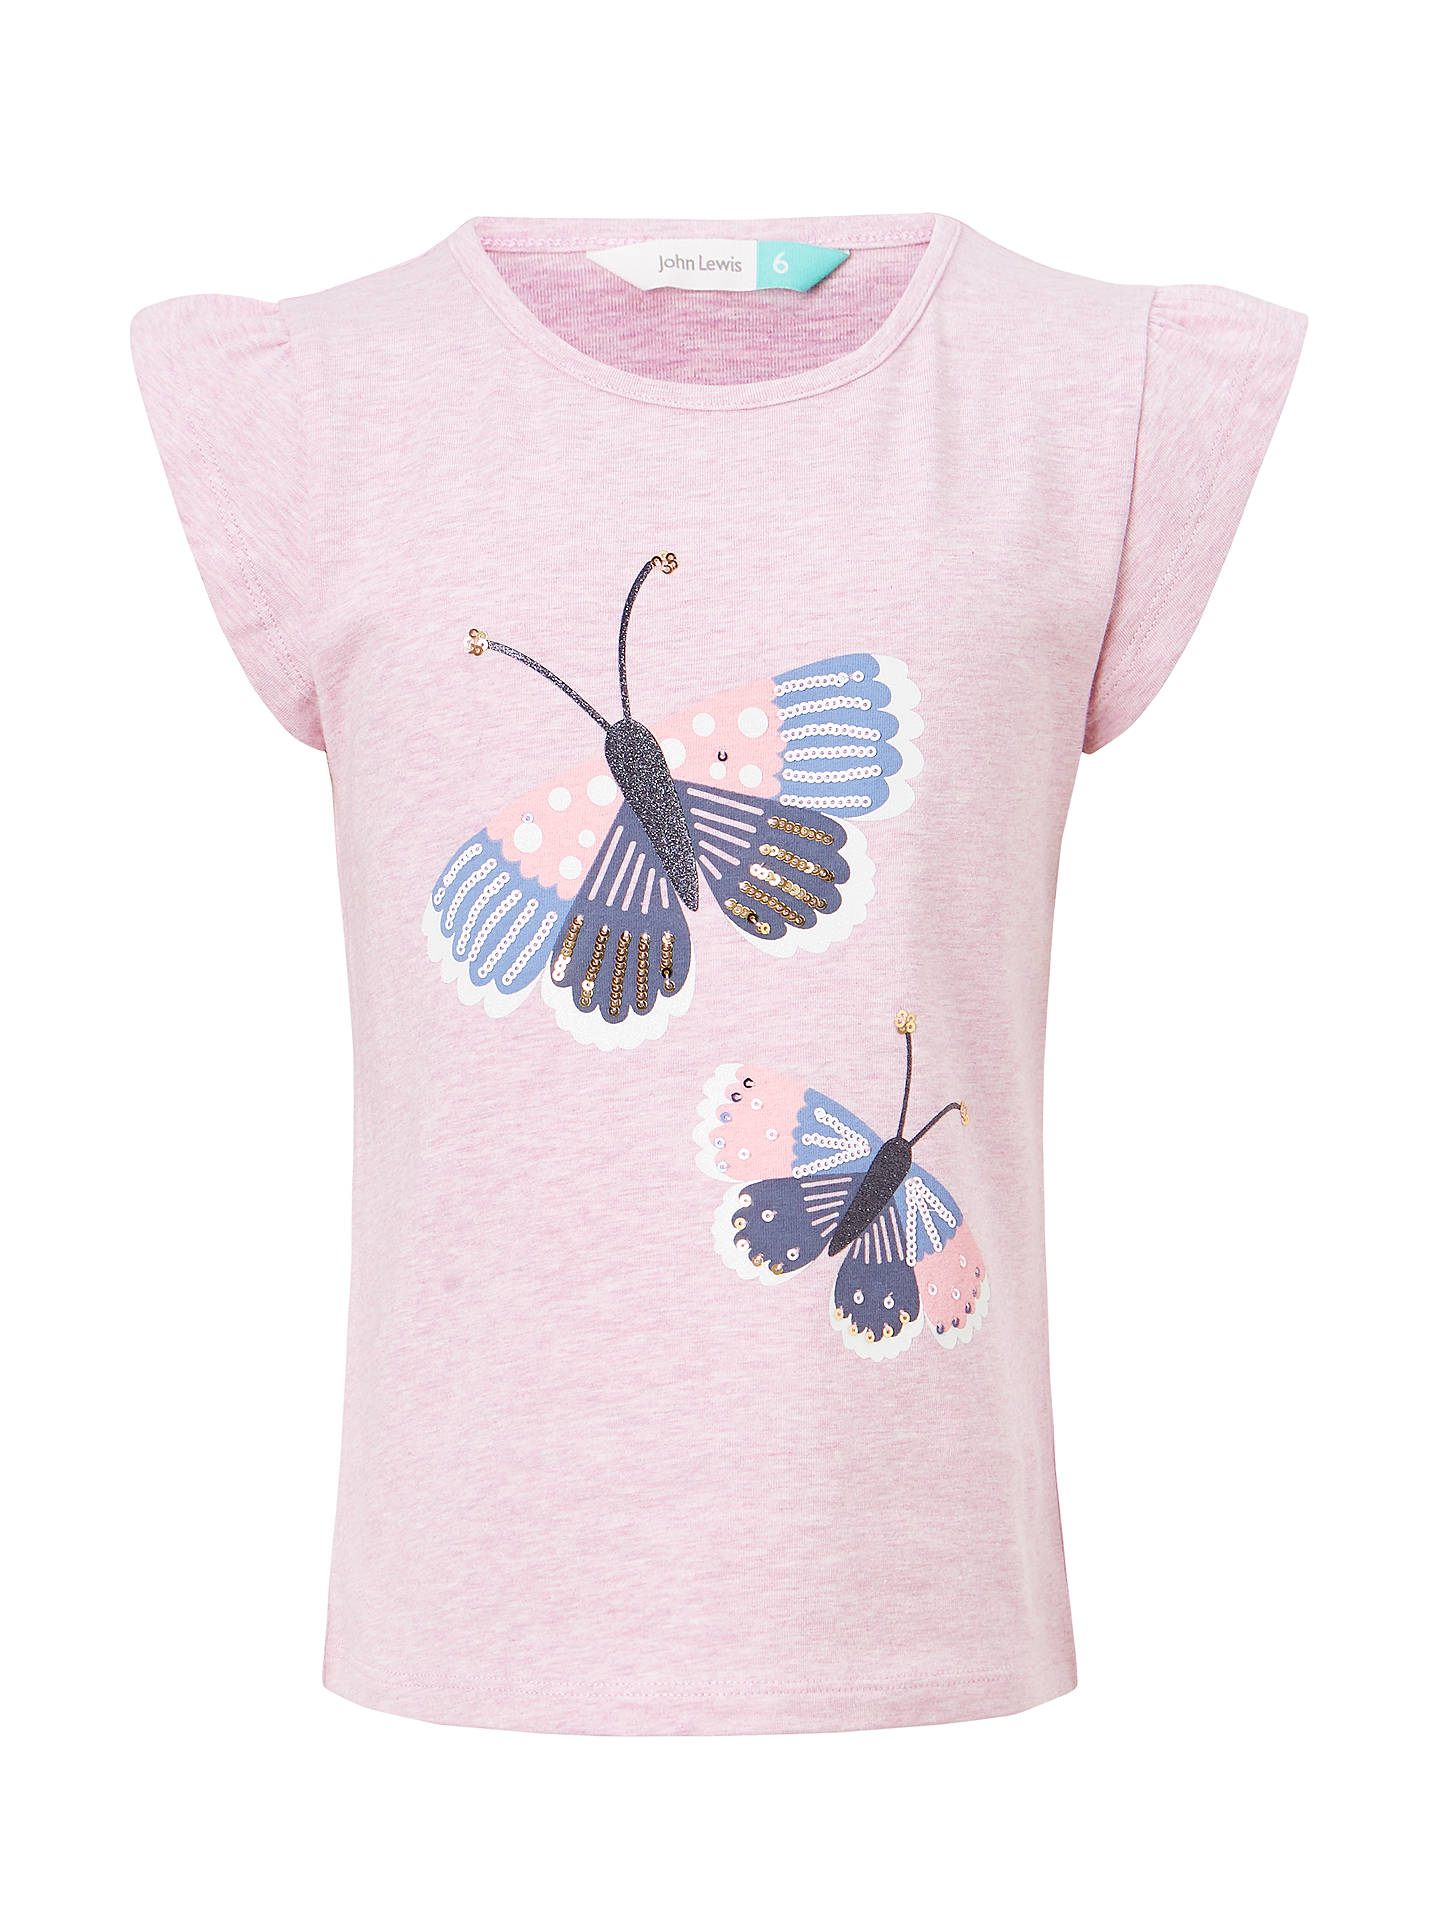 64d39f2038be Buy John Lewis Girls  Butterfly Embroidered T-Shirt